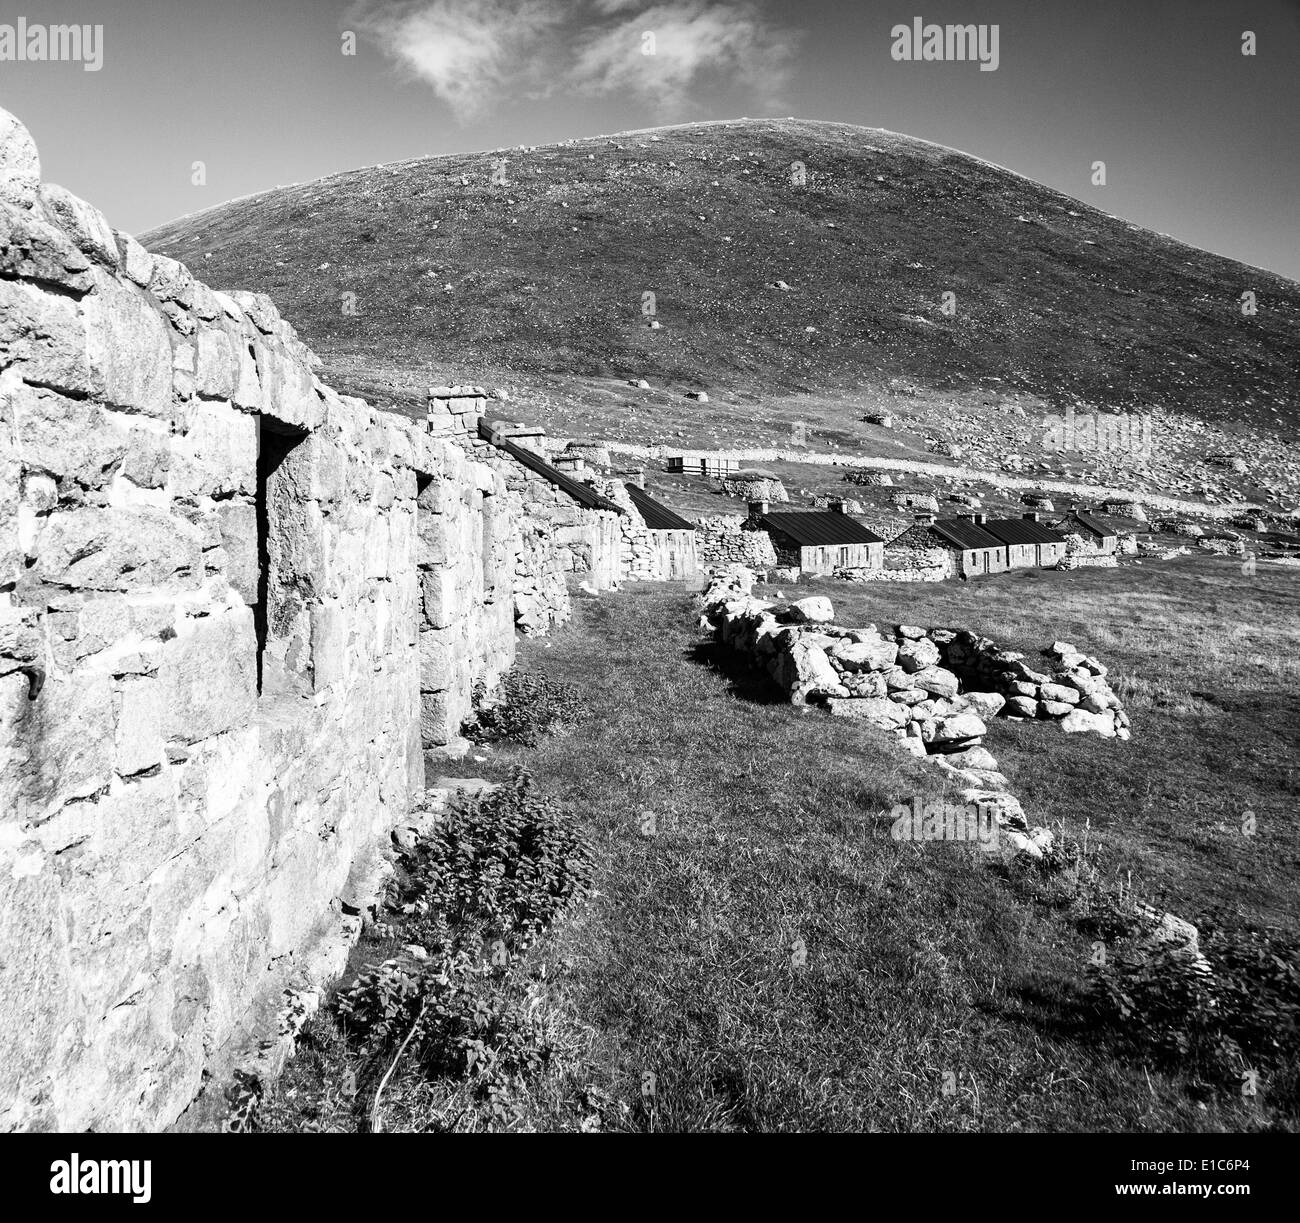 A view of Main Street, Village Bay, St. Kilda, showing both the ancient and newer blackhouses - Stock Image